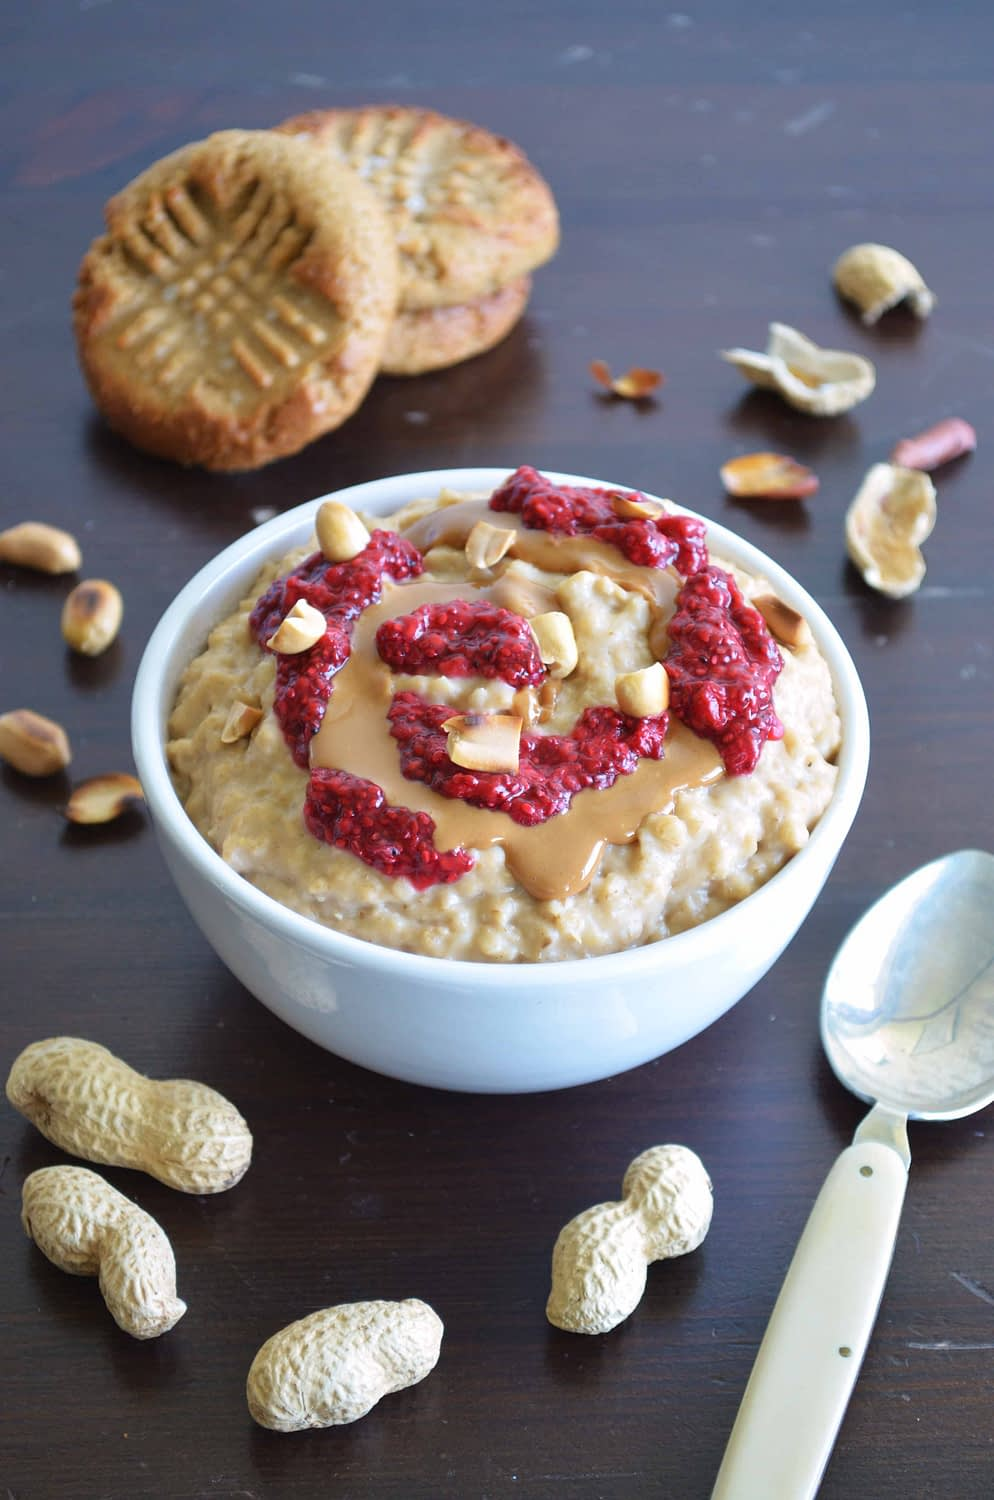 PB & Jelly Oatmeal